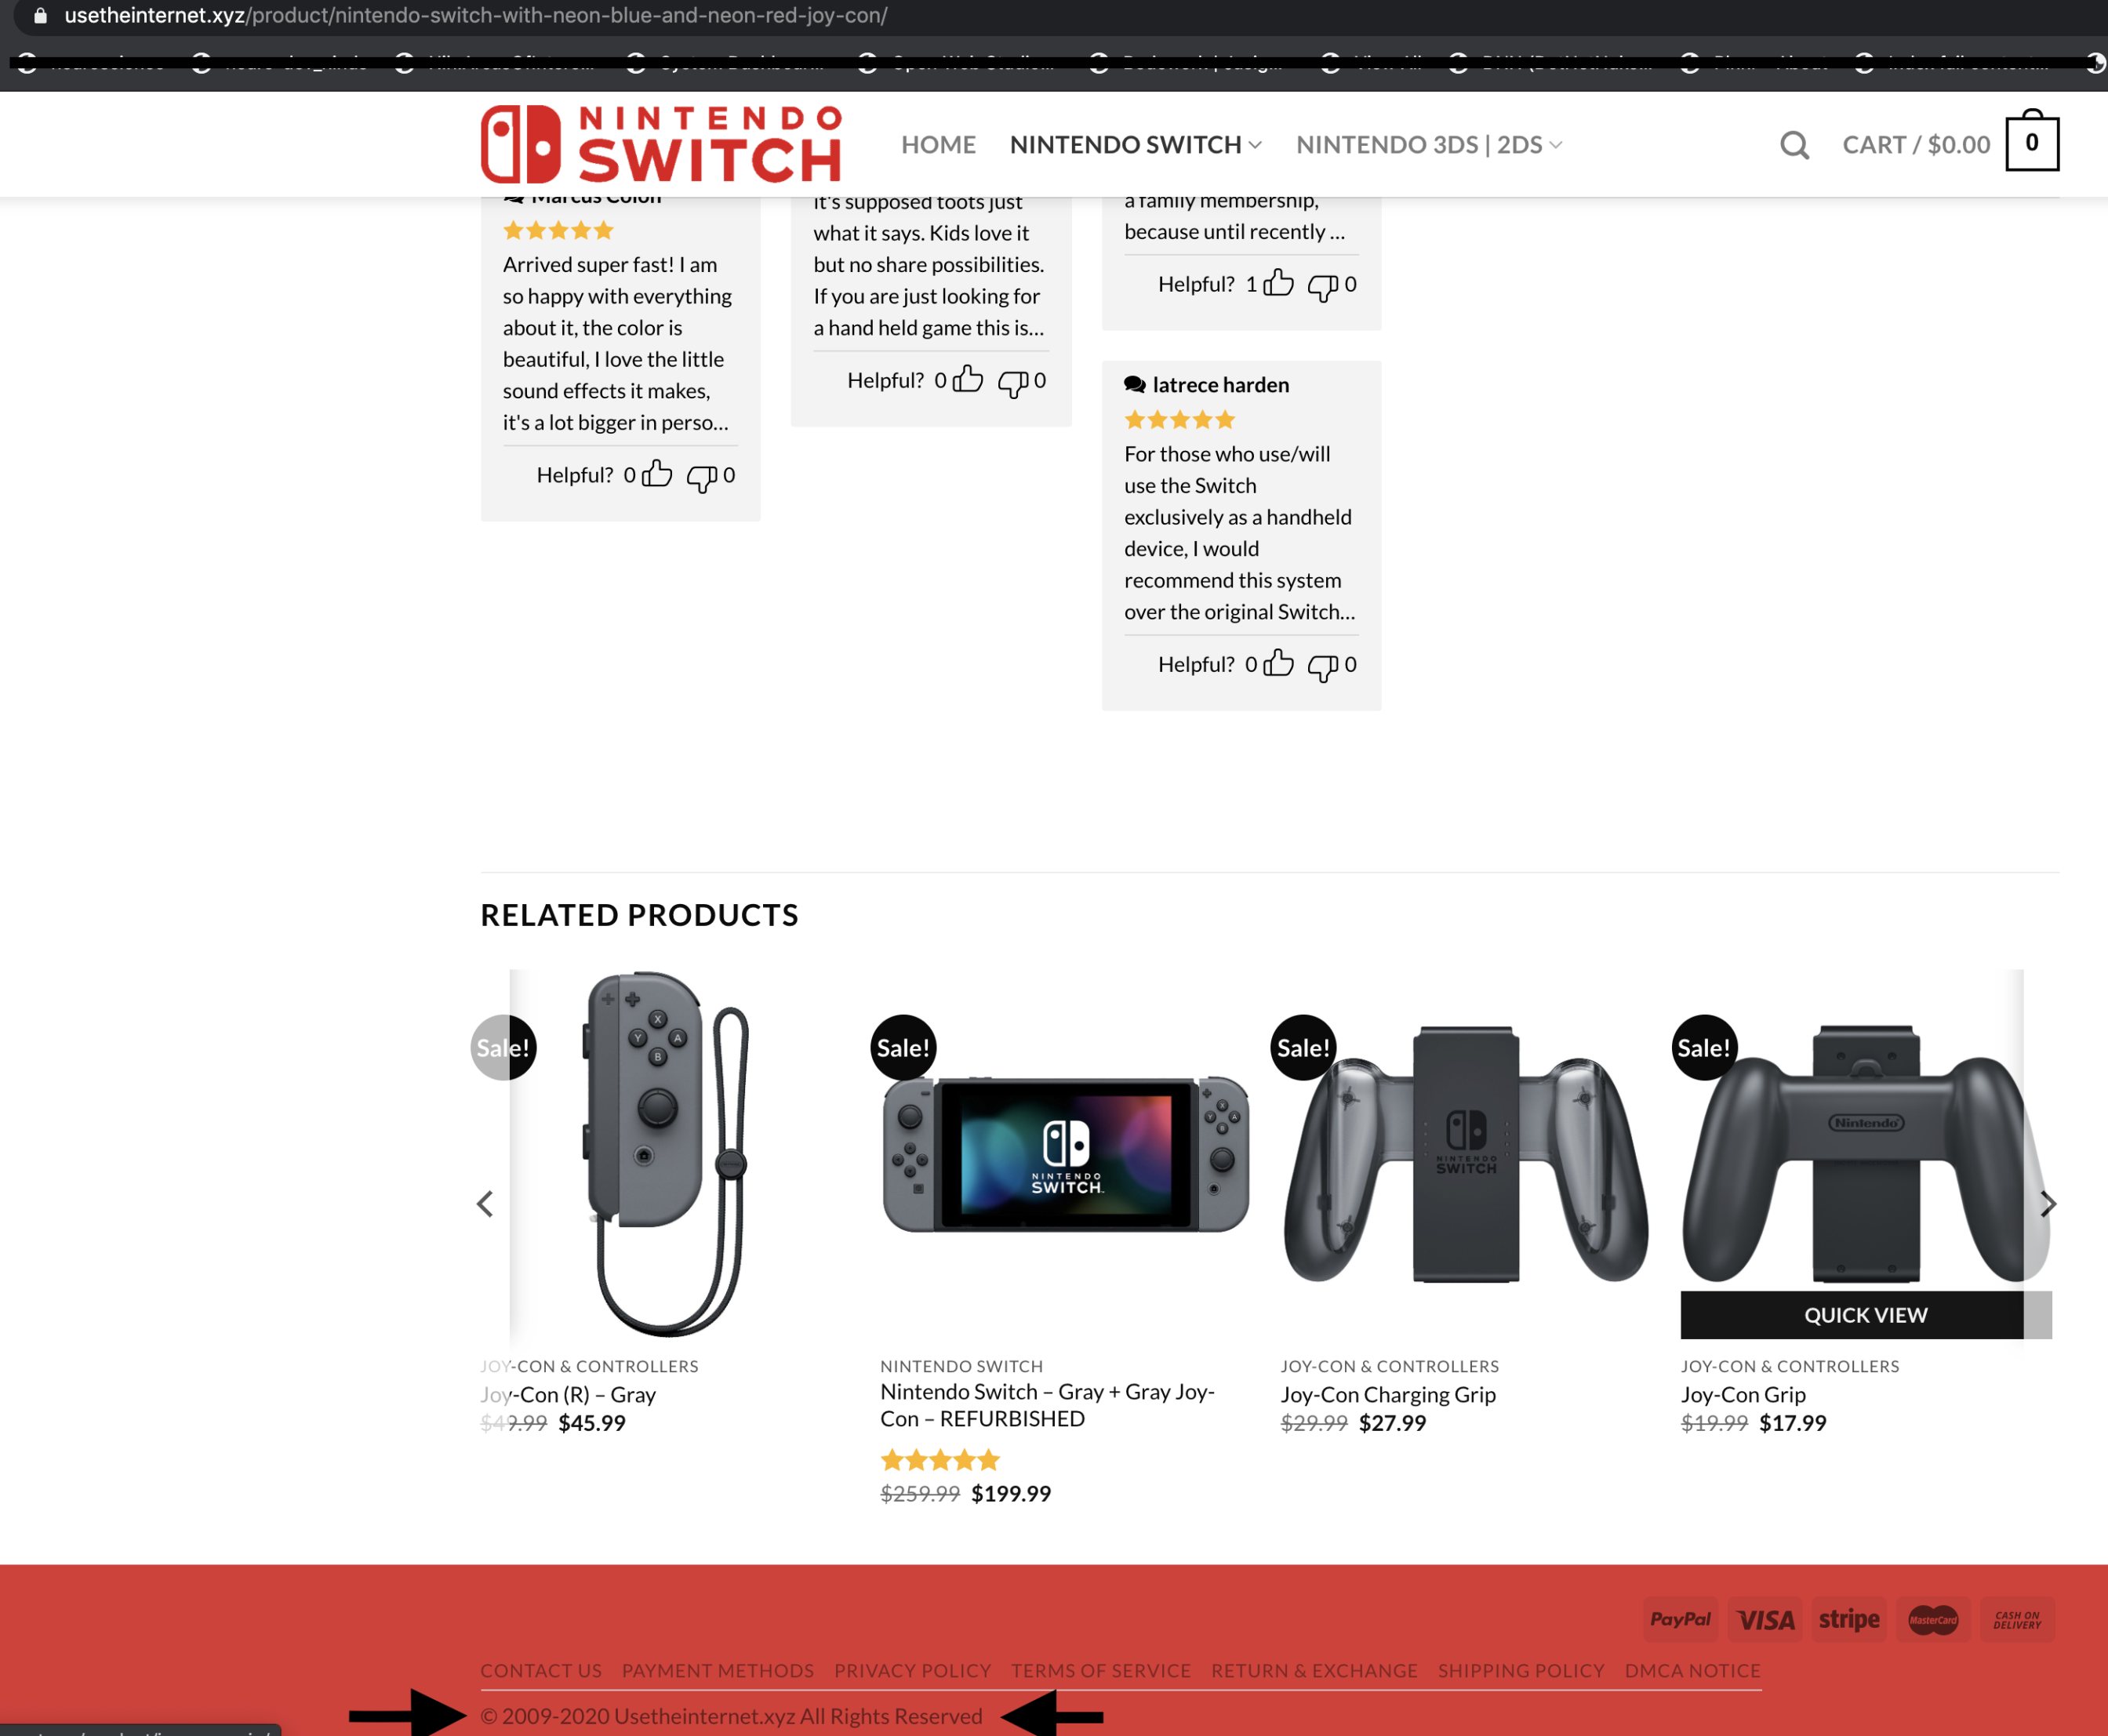 another site sells nintendo switch for $249.99